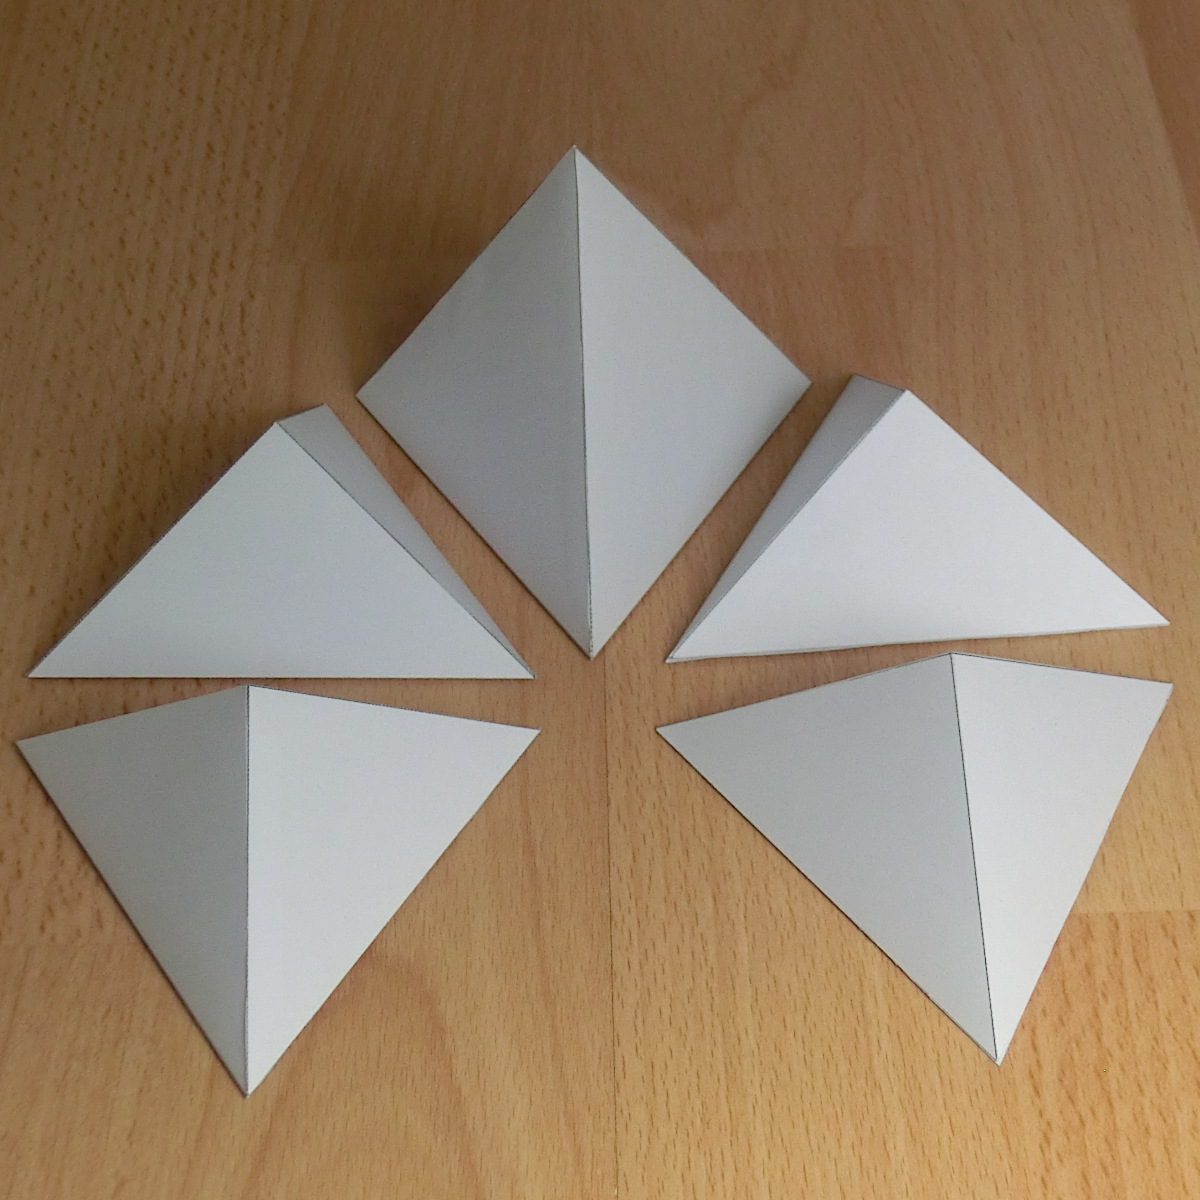 Hexahedron platonic solid template. Paper model of a cube, one of ... | 1200x1200